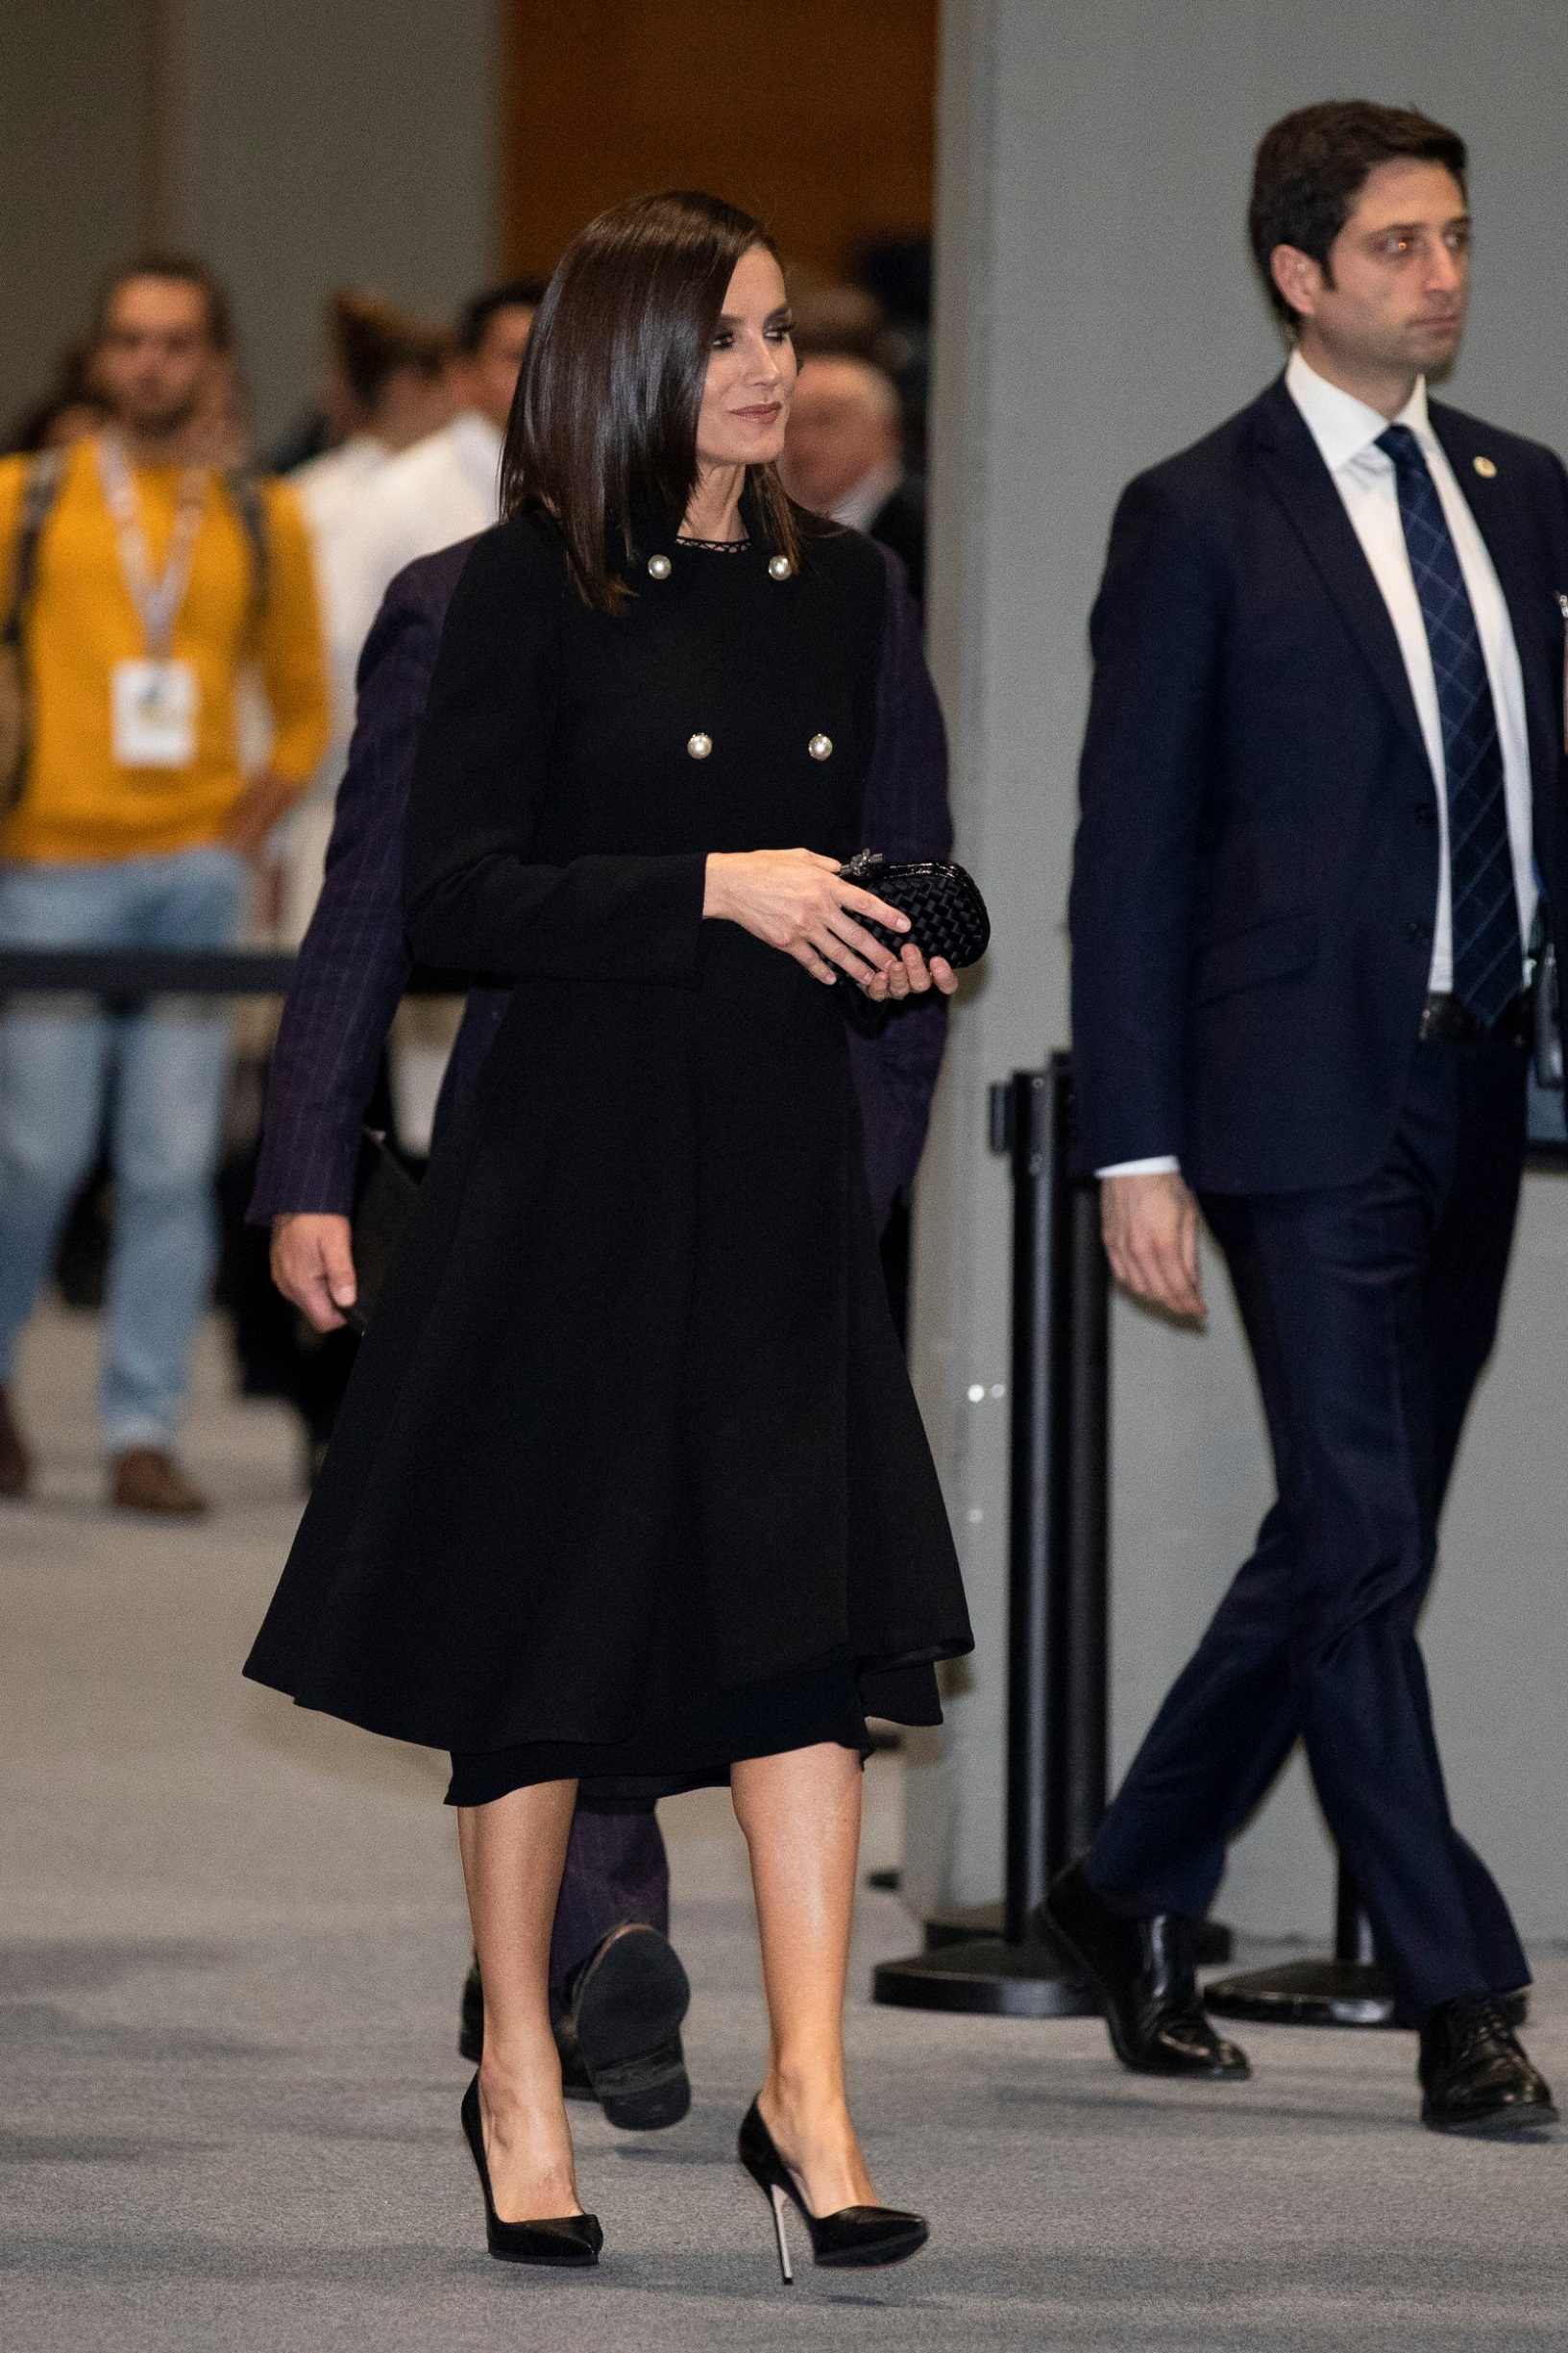 MADRID, SPAIN - DECEMBER 03: Queen Letizia of Spain (C) leaves after a conference at the COP25 Climate Submmit at IFEMA Madrid on December 03, 2019 in Madrid, Spain. (Photo by Pablo Blazquez Dominguez/Getty Images)